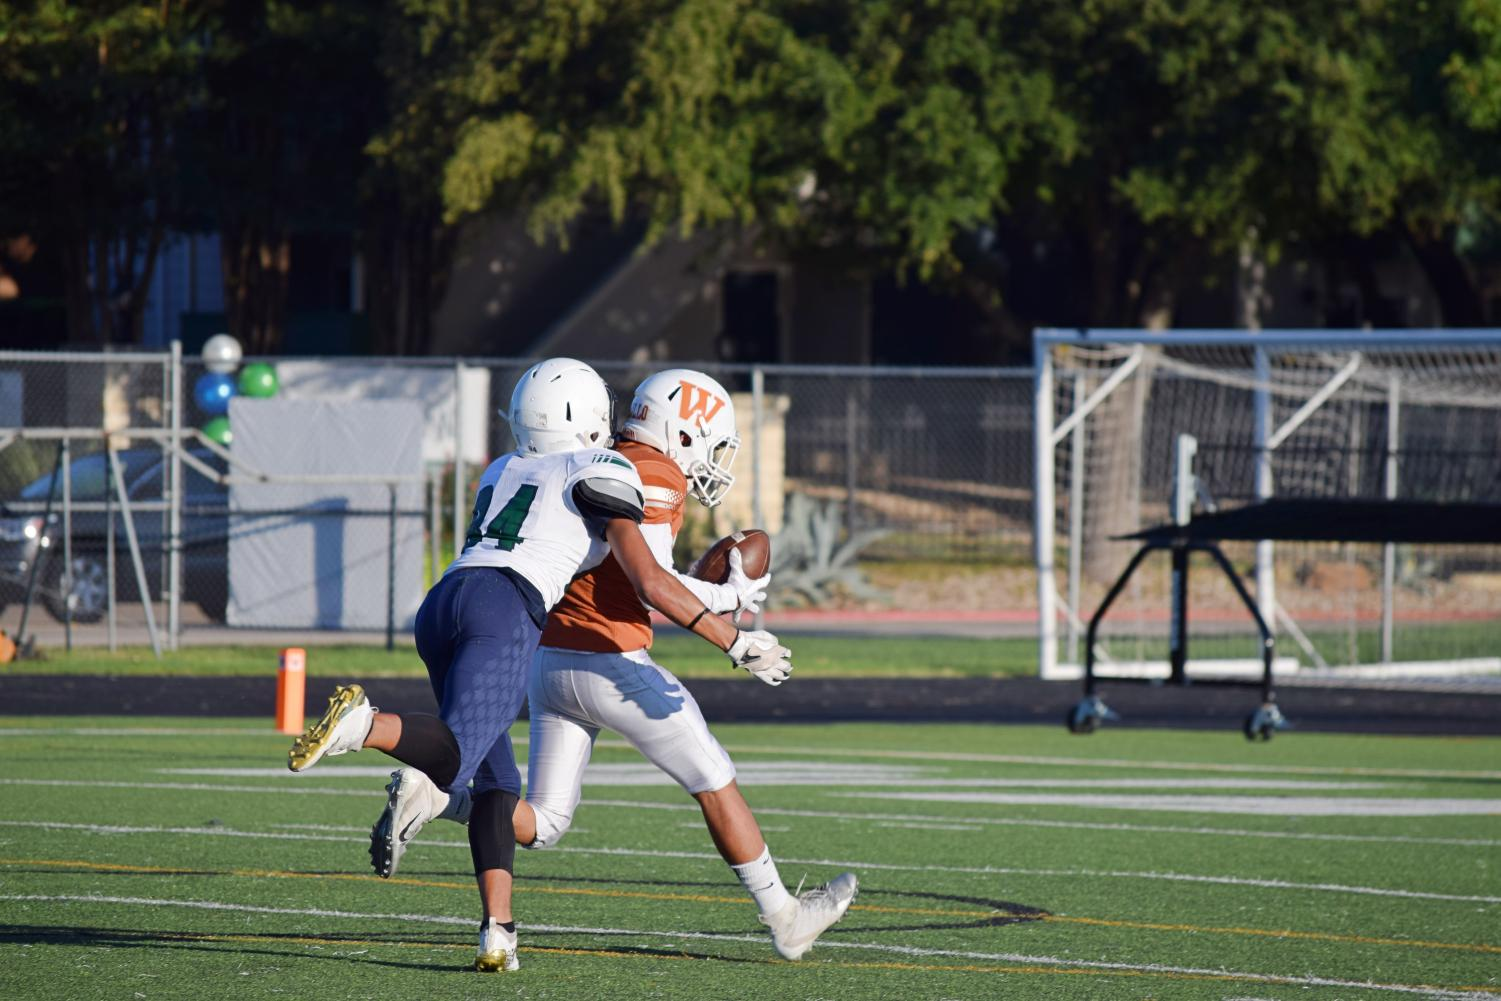 A+McNeil+receiver+runs+after+Cesar+Badillo+%2721+as+he+tries+to+sprint+to+the+end+zone.